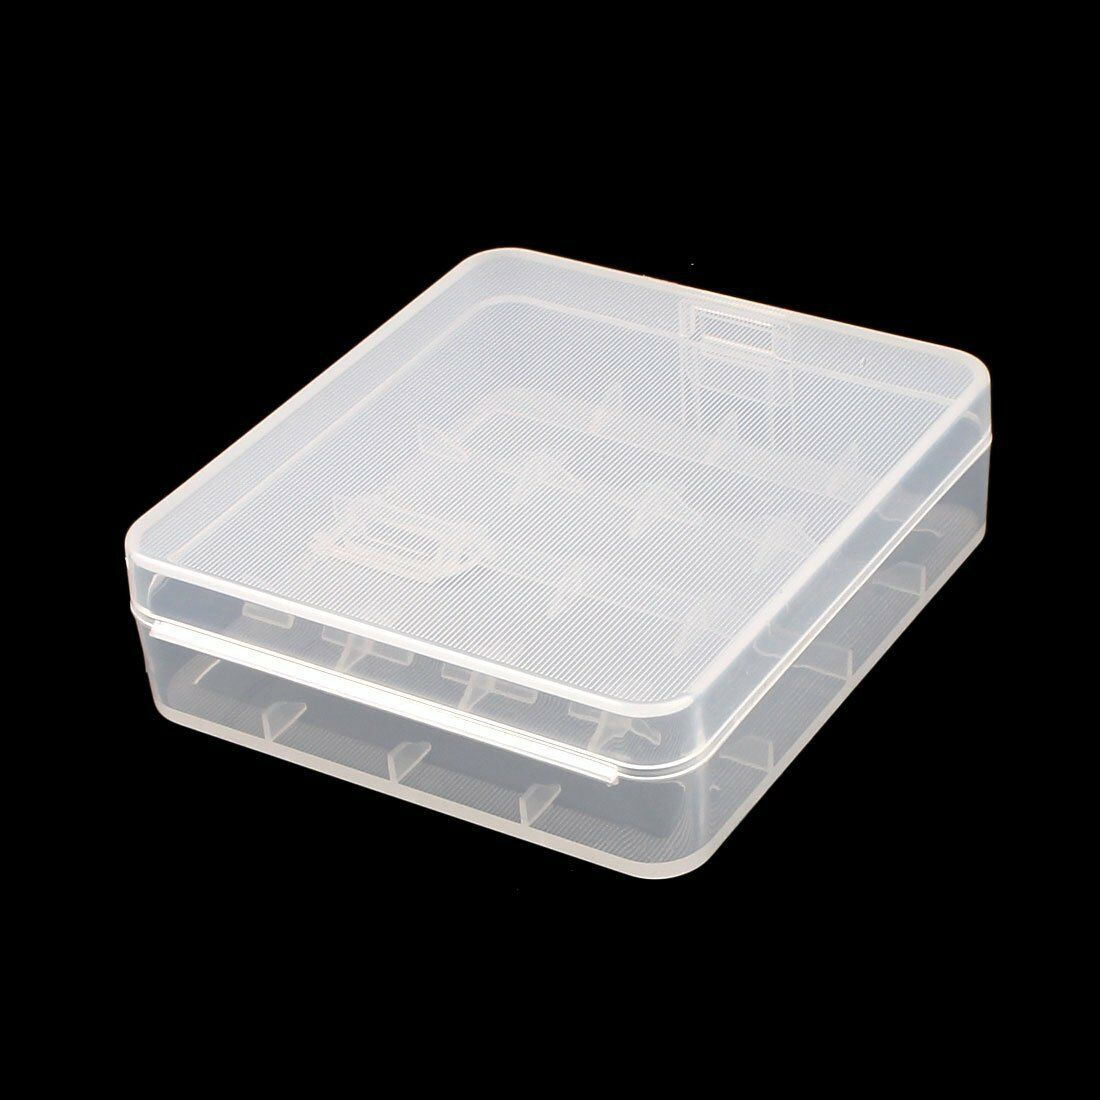 8 Pcs Clear White Plastic Storage Battery Box Holder Case for 4x 18650 Batteries Consumer Electronics